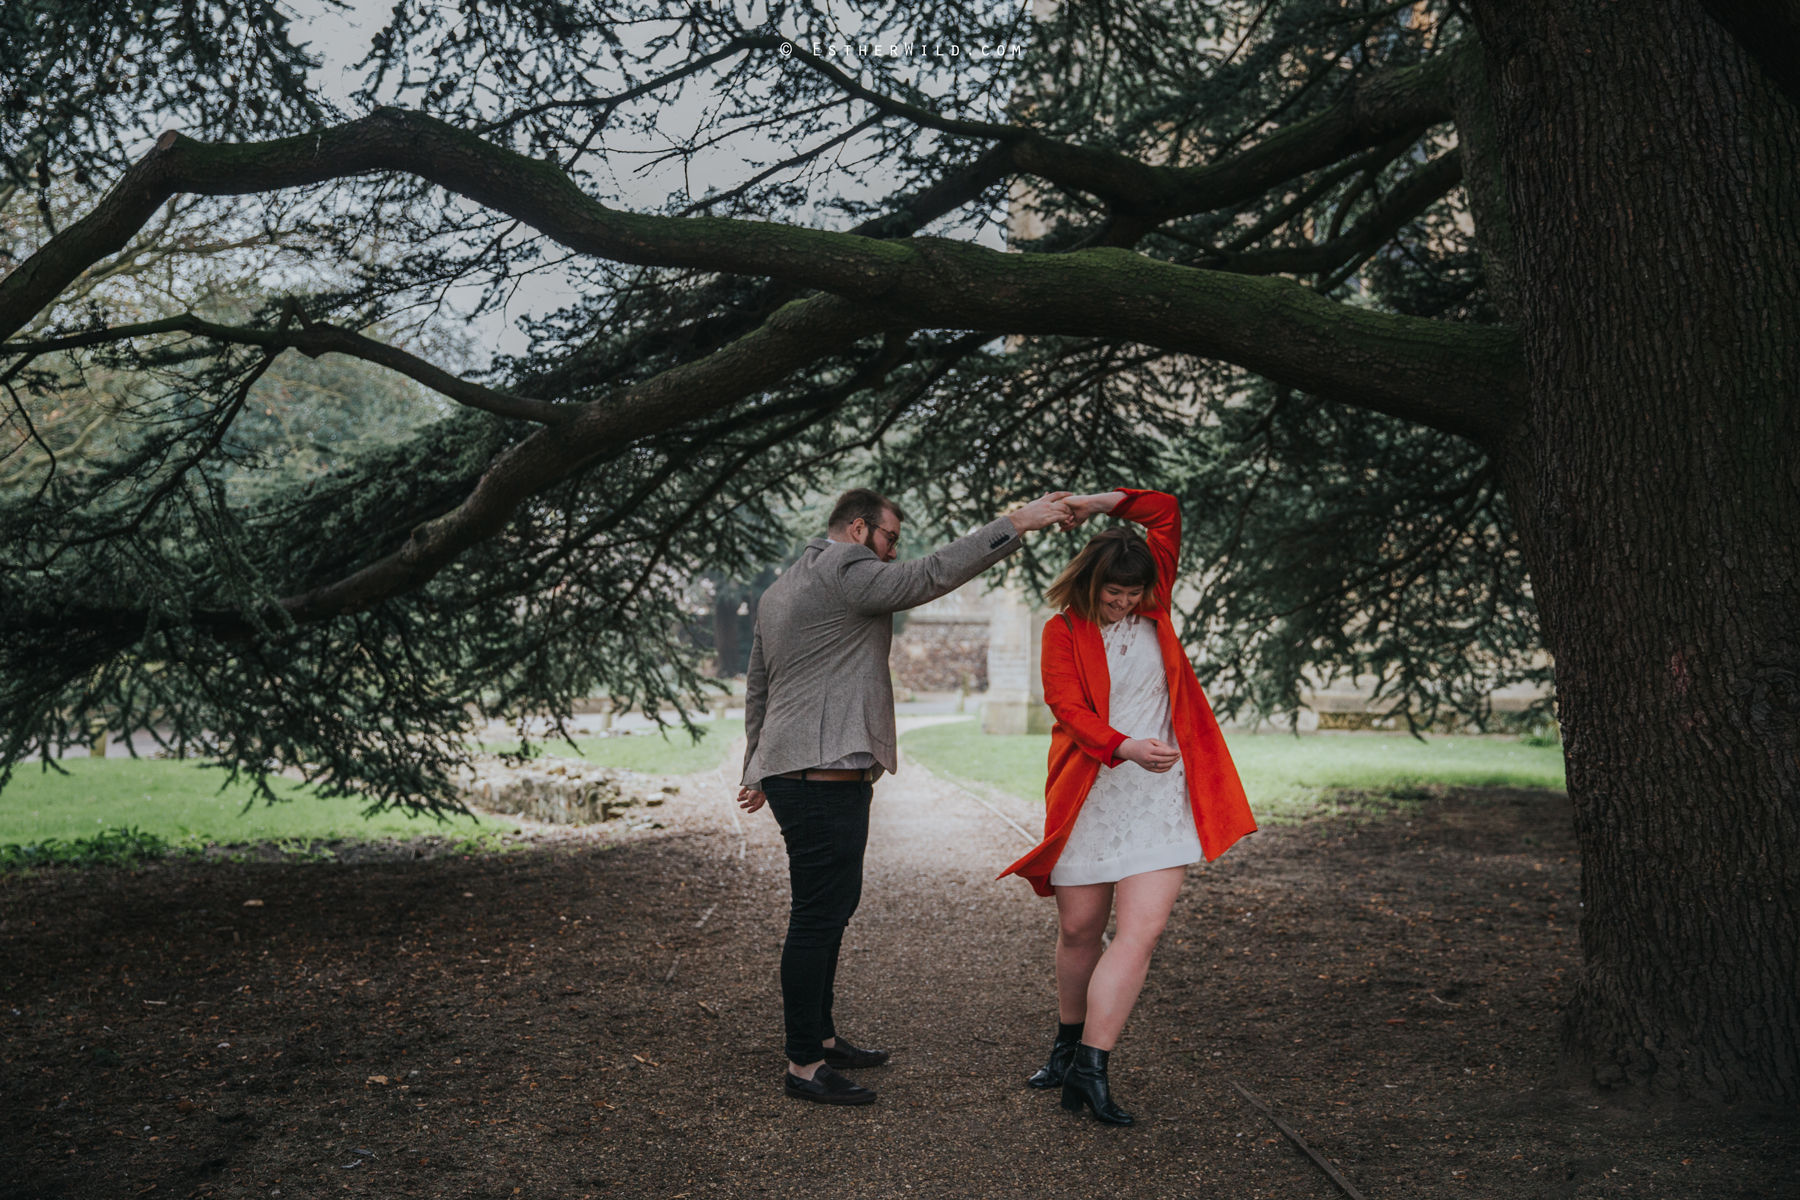 Norwich_Cathedral_Photo_Session_Engagement_Love_Pre-Wedding_IMG_3402.jpg